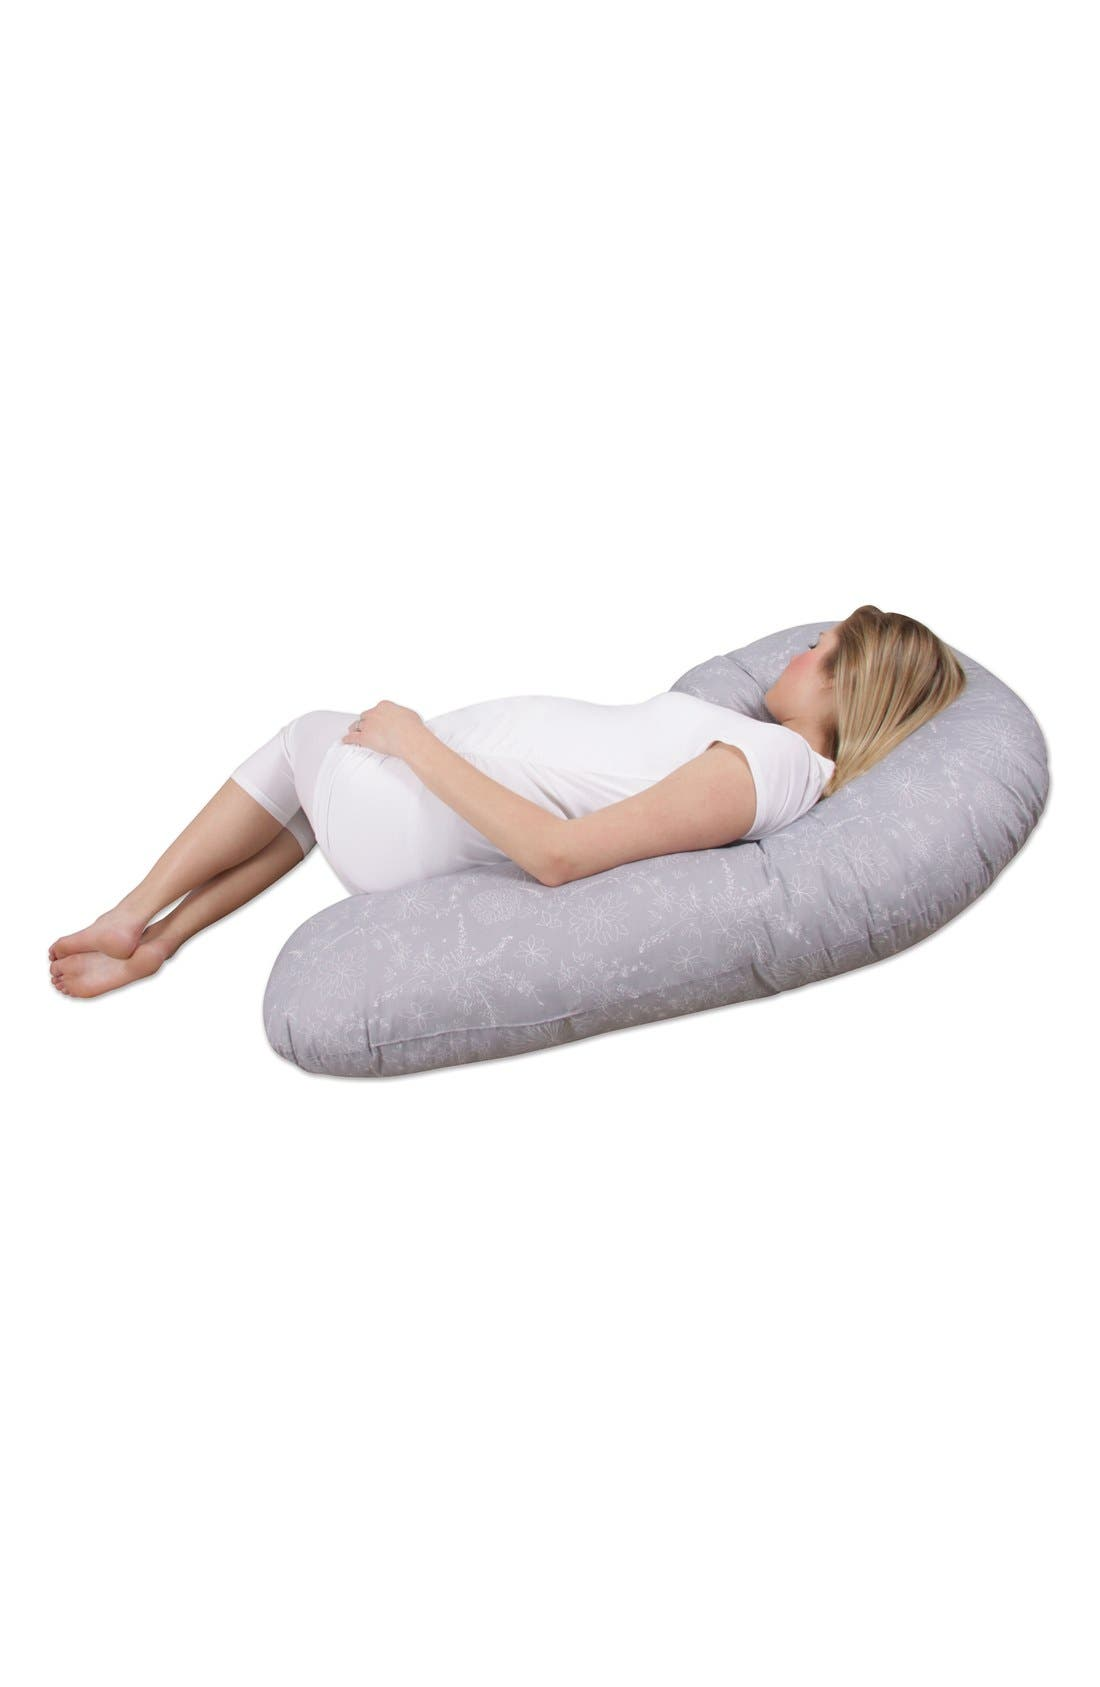 'Preggle<sup>®</sup> Chic - XL' Pregnancy Support Pillow,                             Alternate thumbnail 11, color,